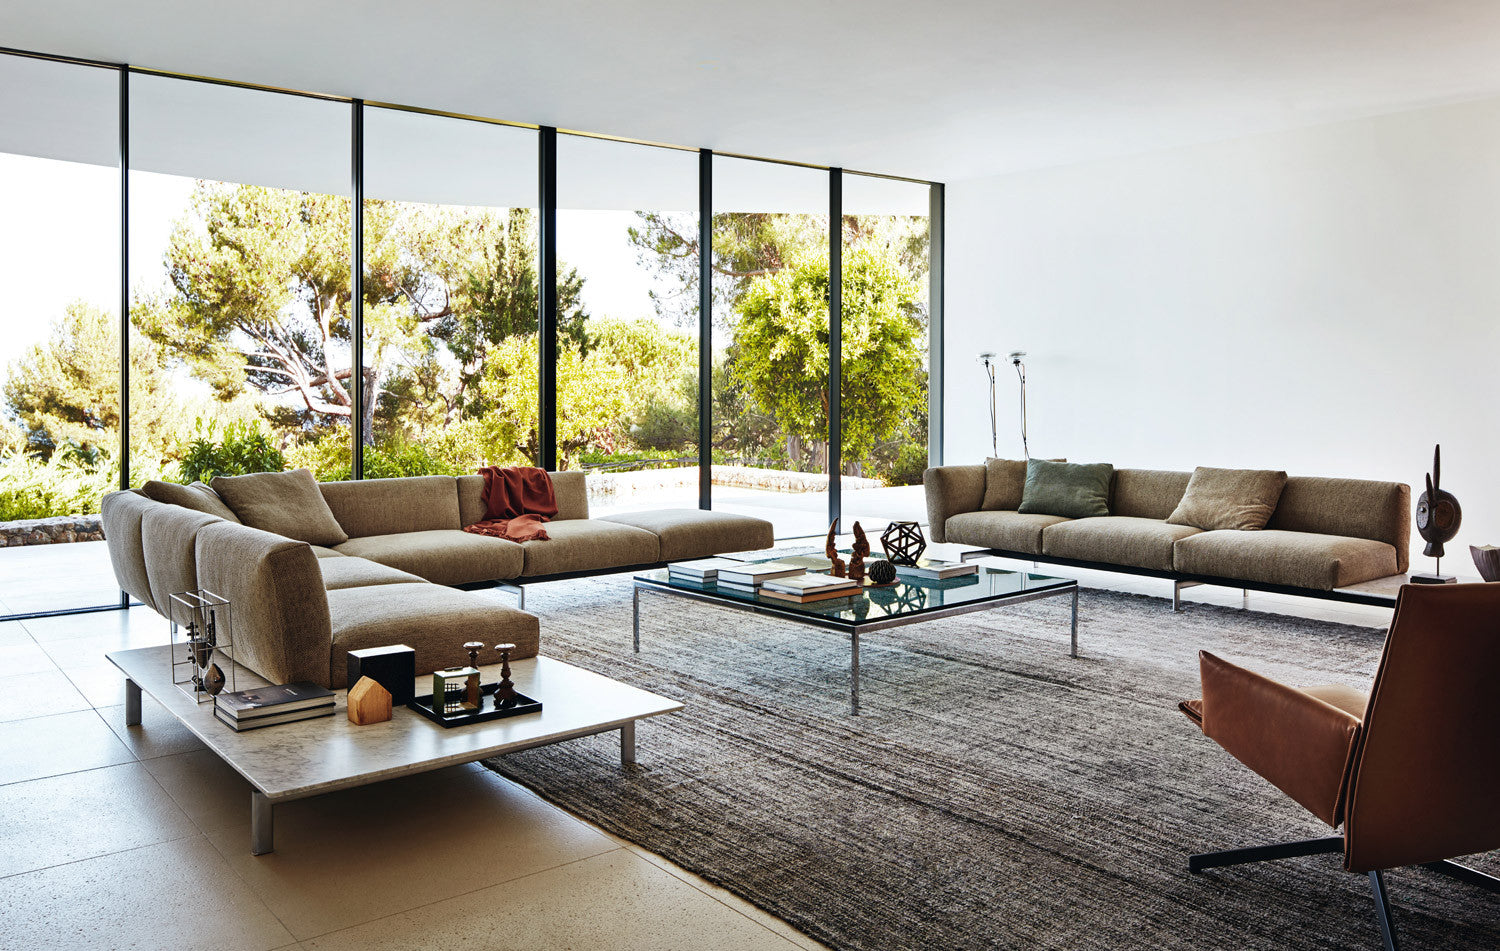 Florence Knoll Low Table Square Couch Potato Company